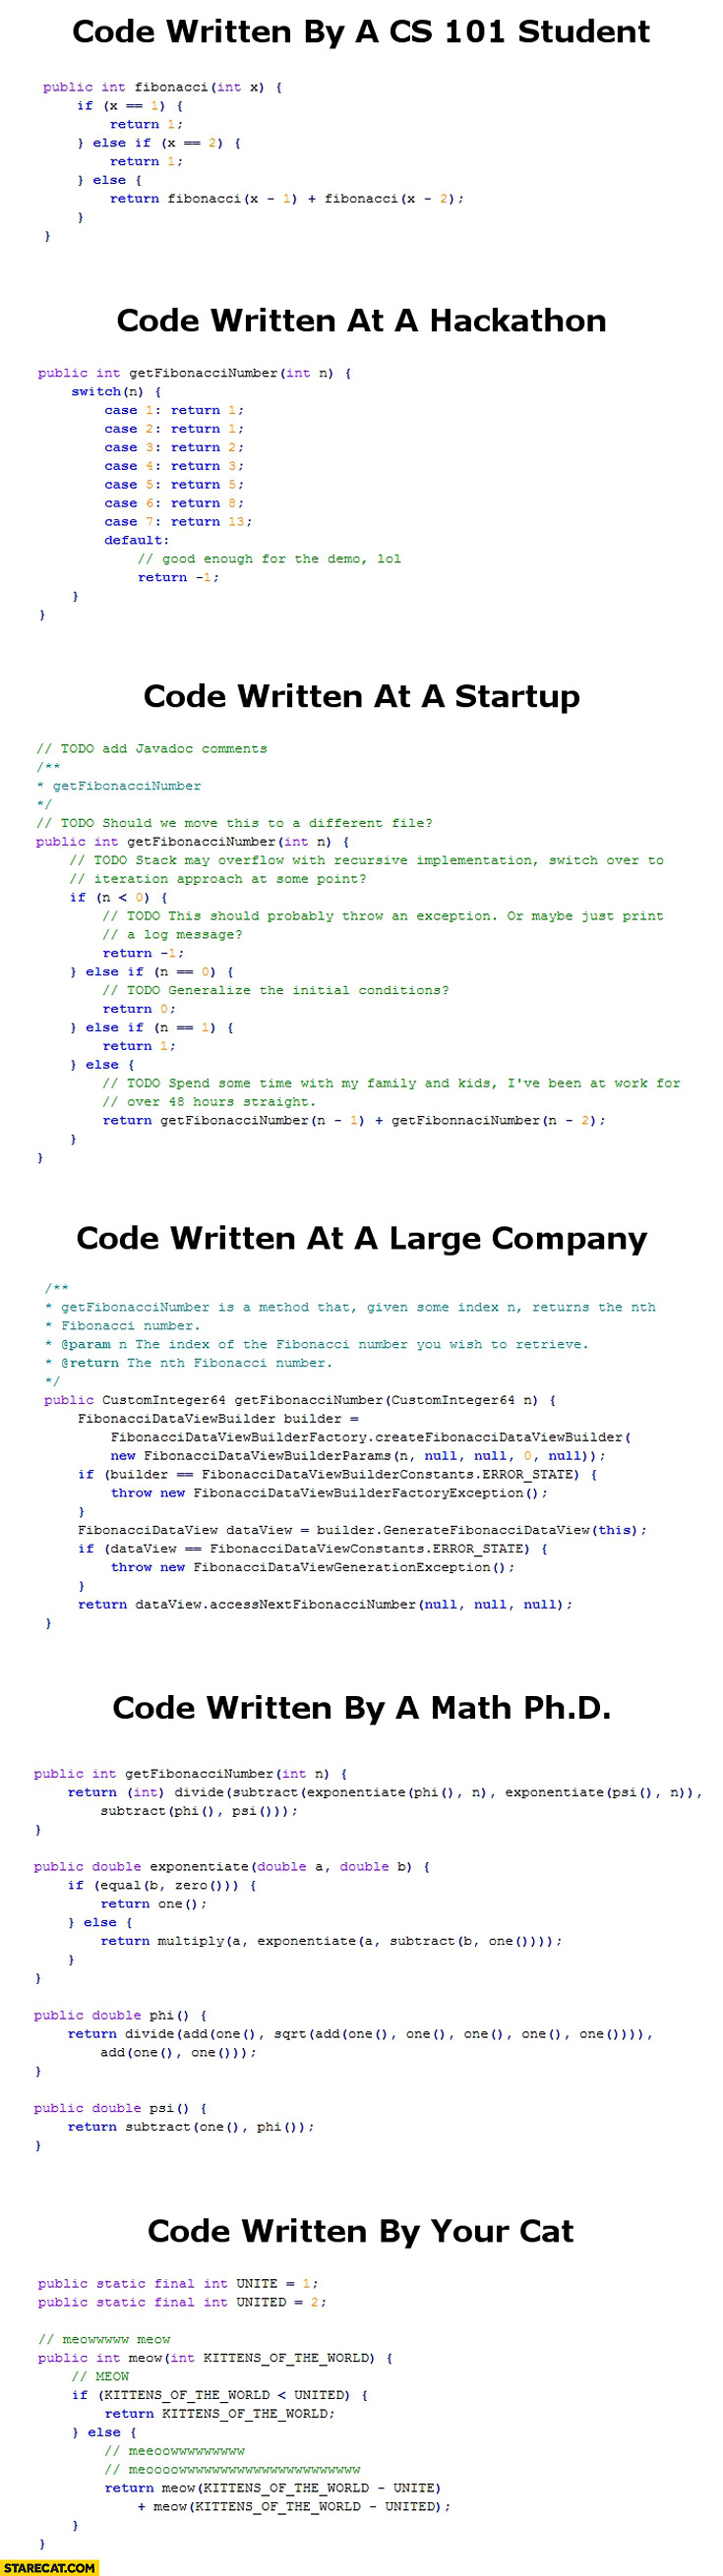 Code written by: CS 101 student, at hackaton, at a startup, at a large company, by a math Ph.D, by your cat comparison